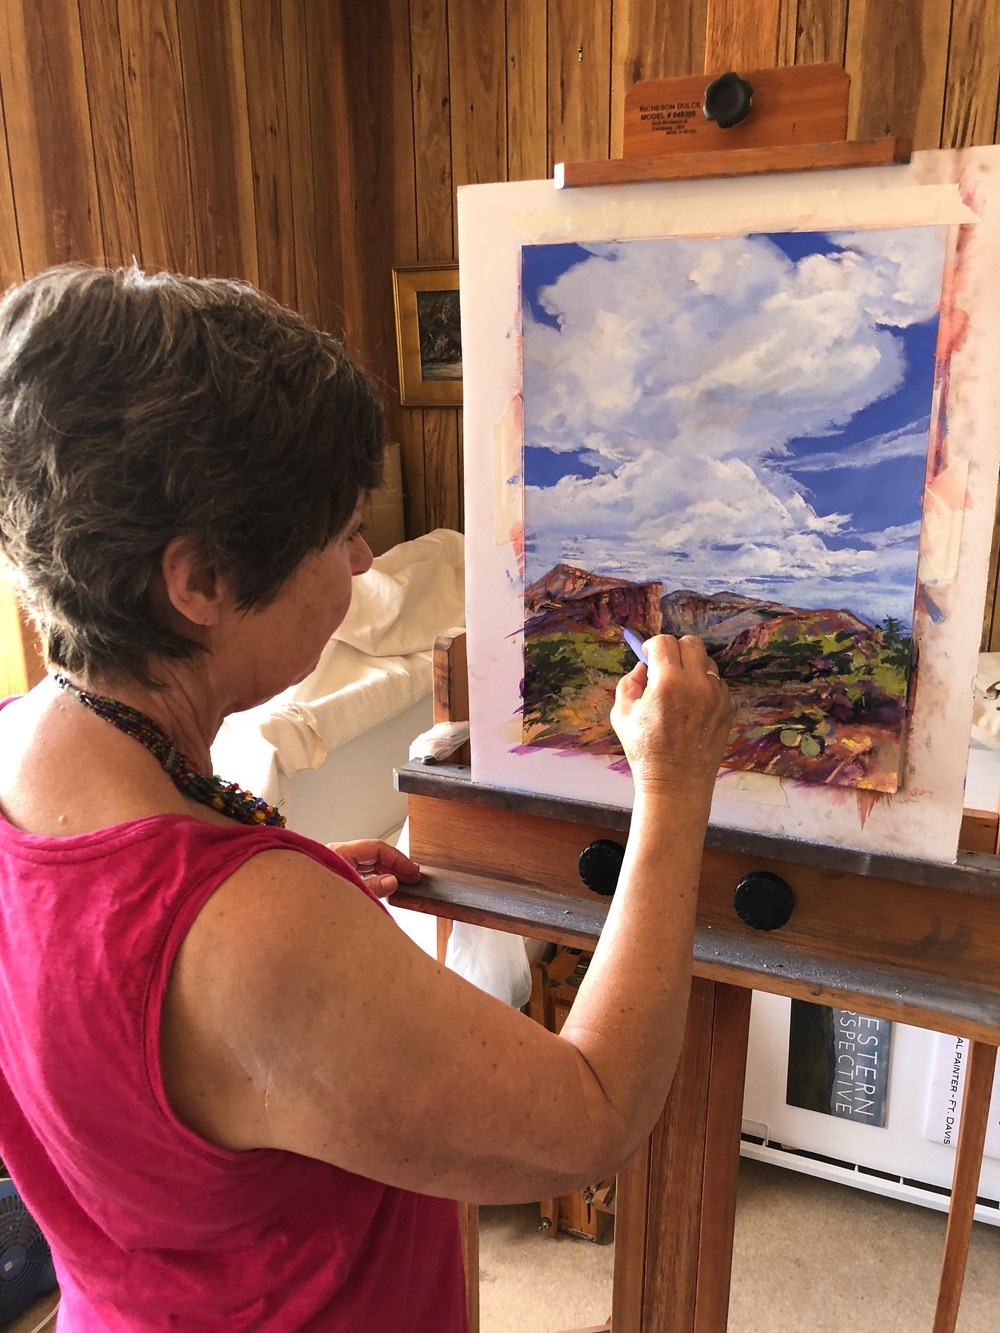 Artist Lindy Severns at easel working on a pastel painting